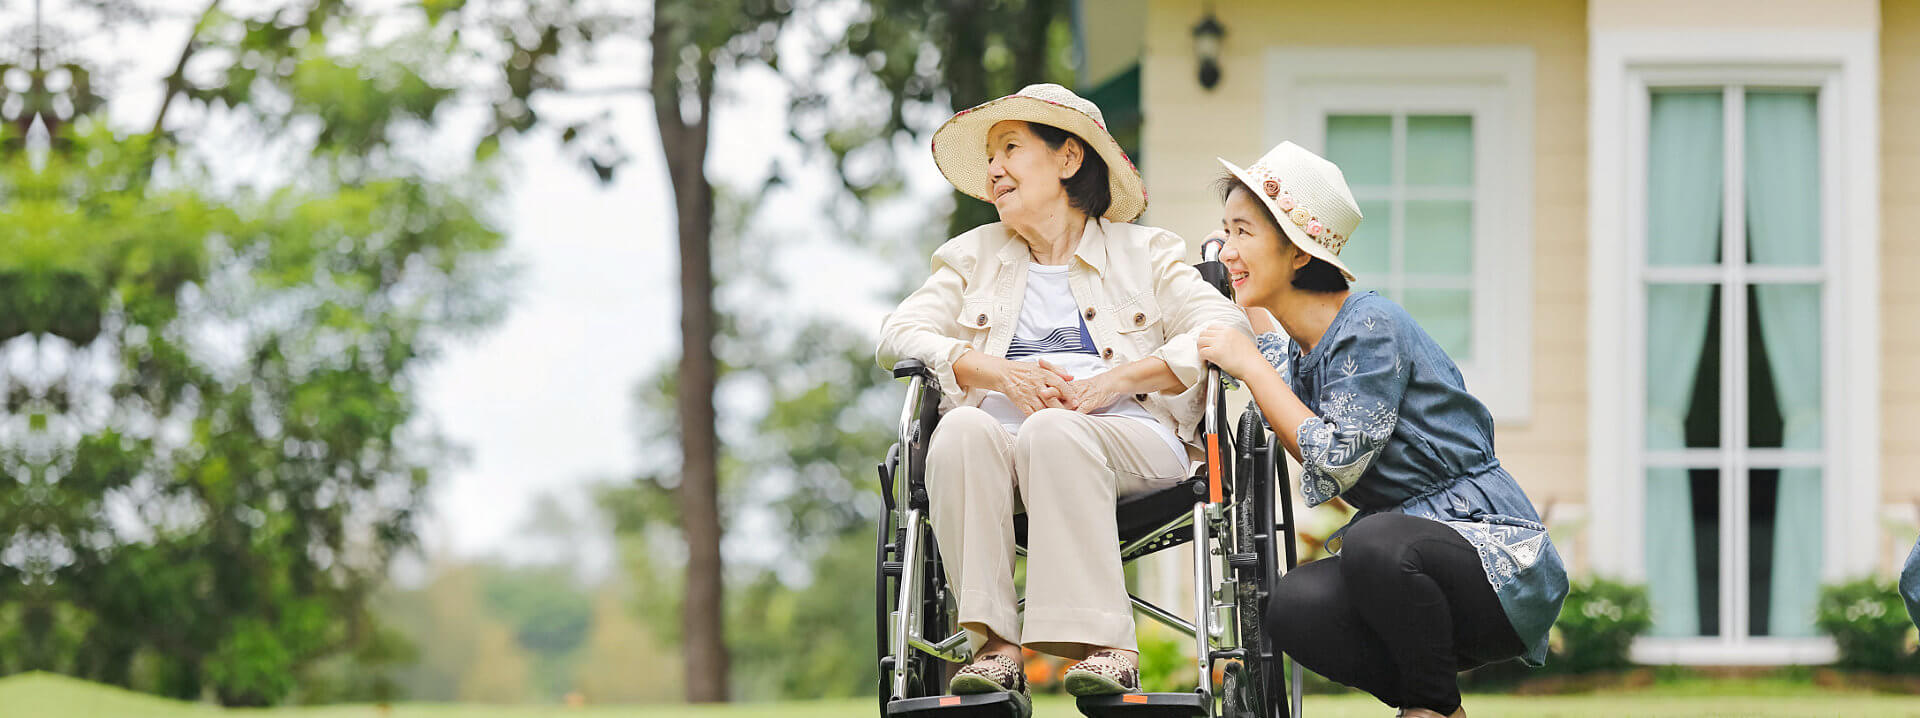 Elderly women relax on wheelchair in backyard with daughter